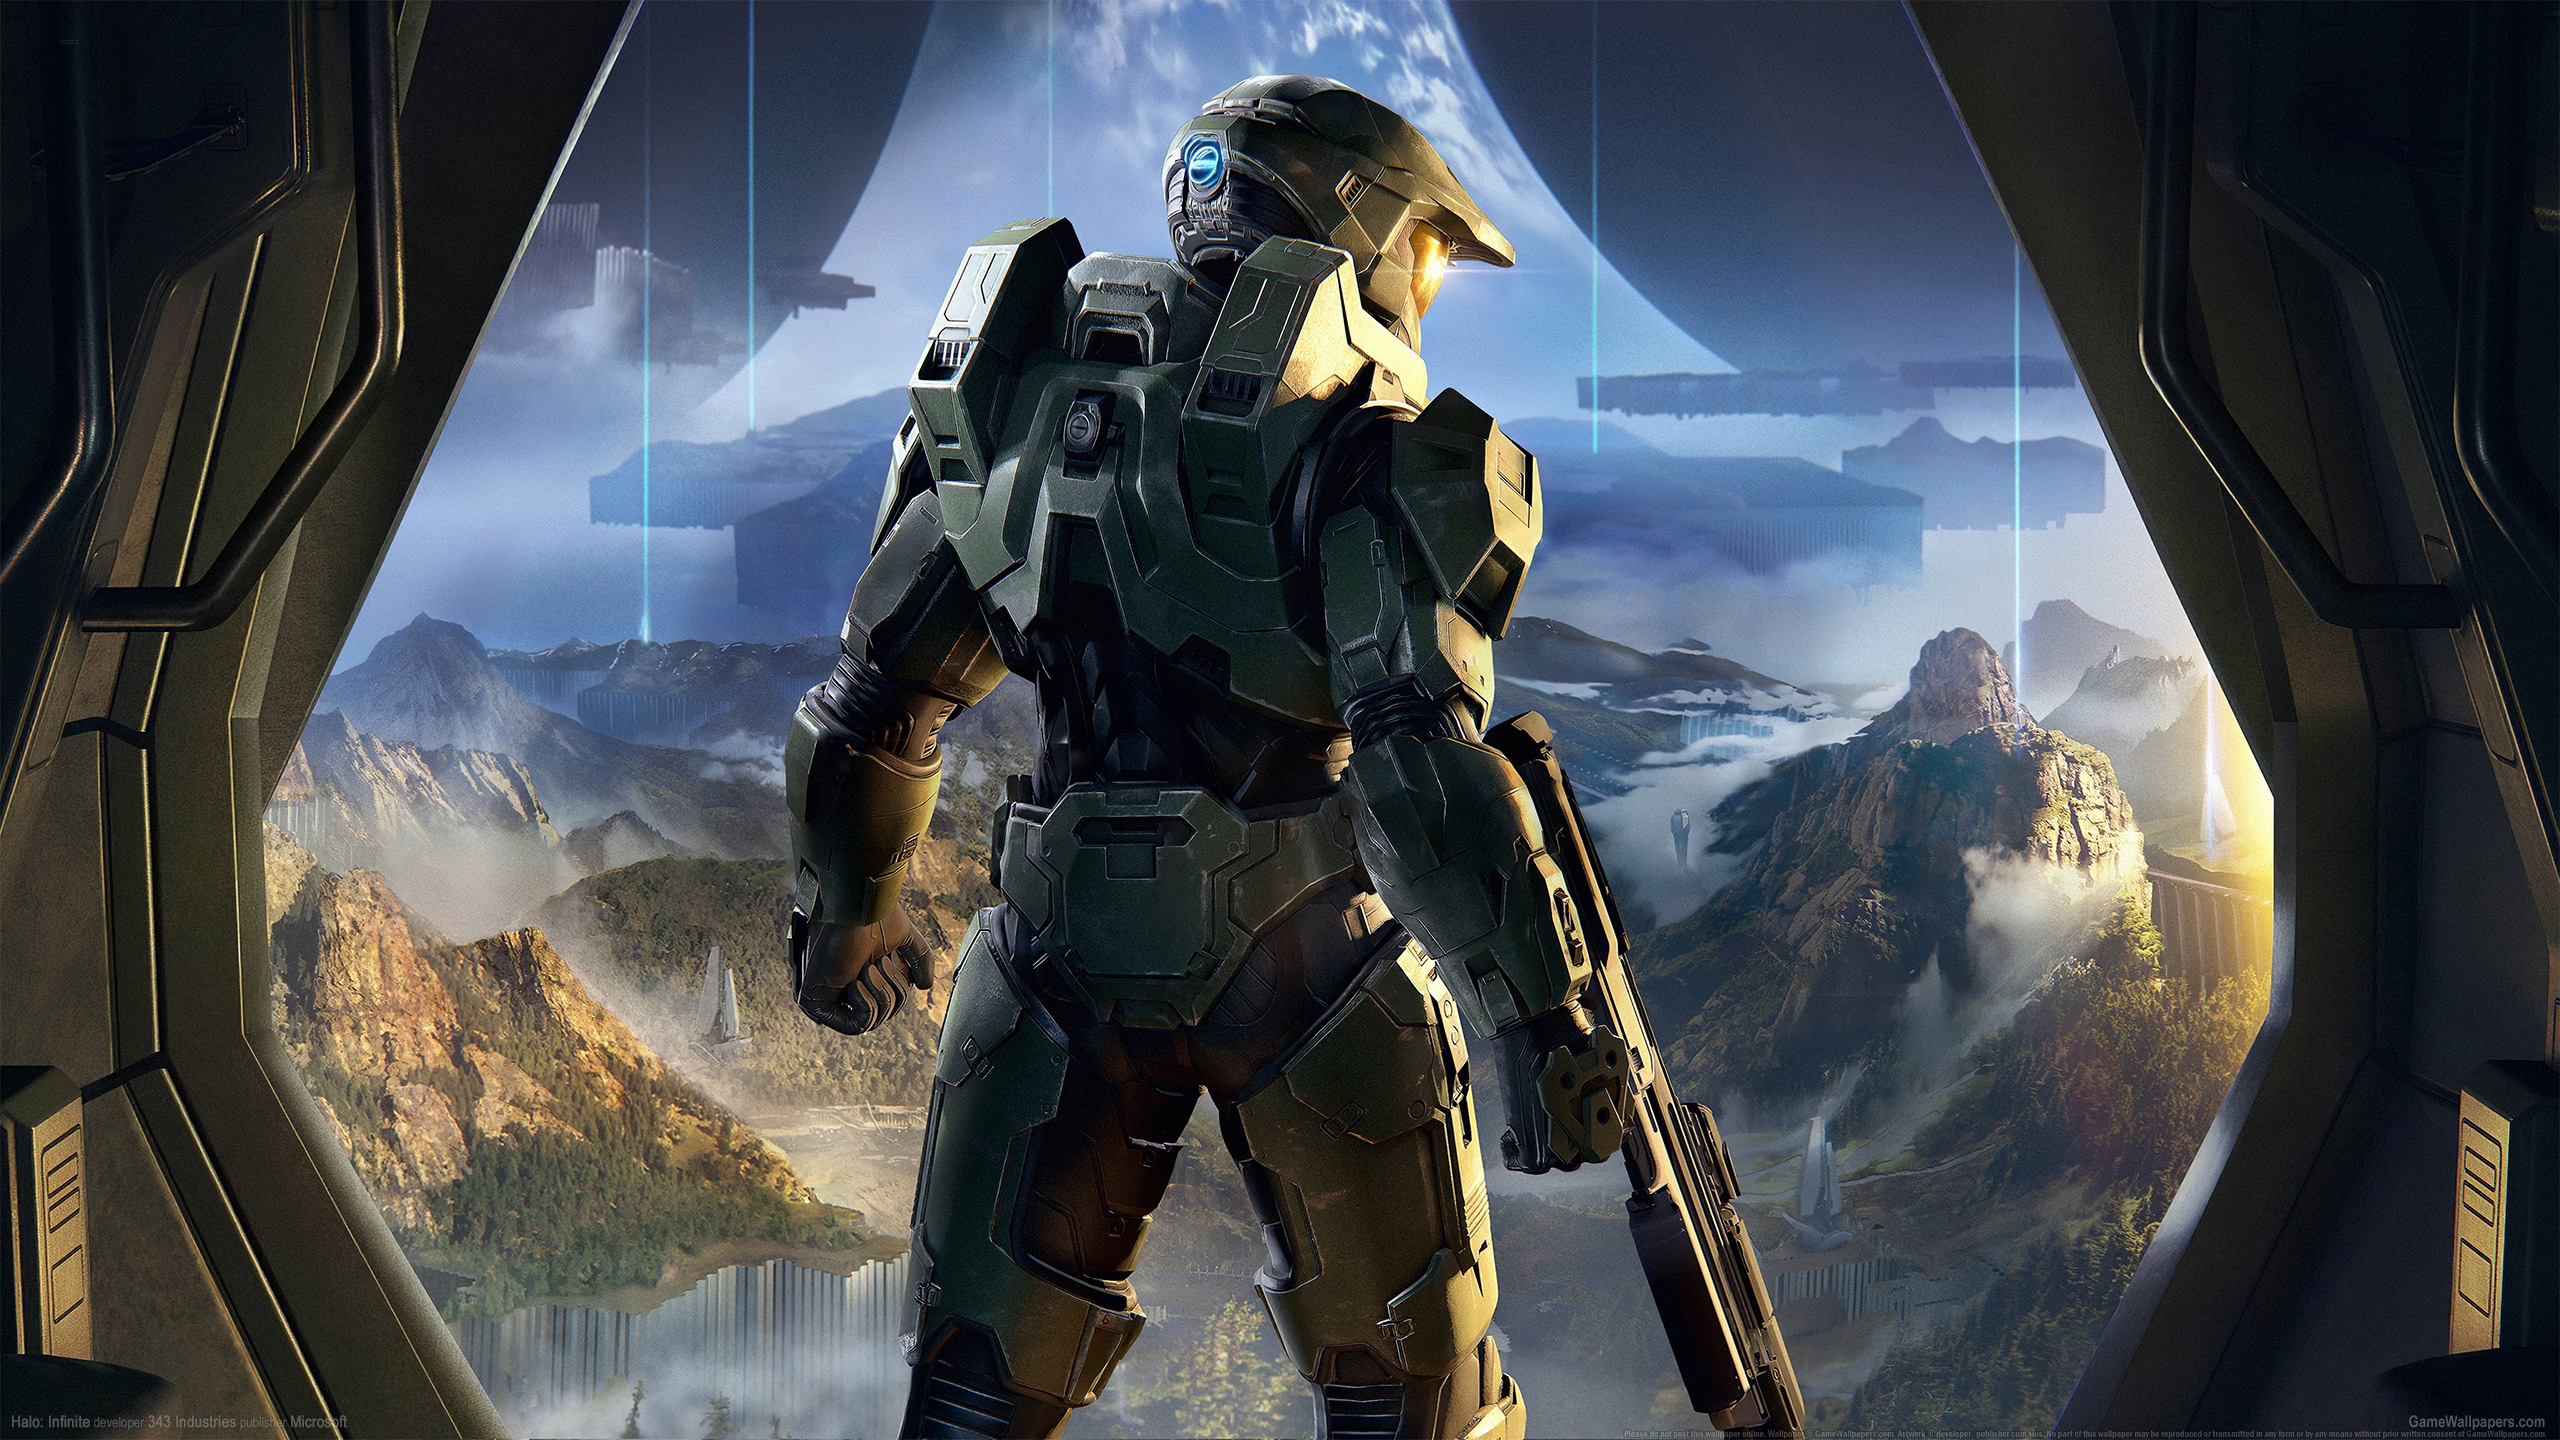 Halo: Infinite 2560x1440 wallpaper or background 02